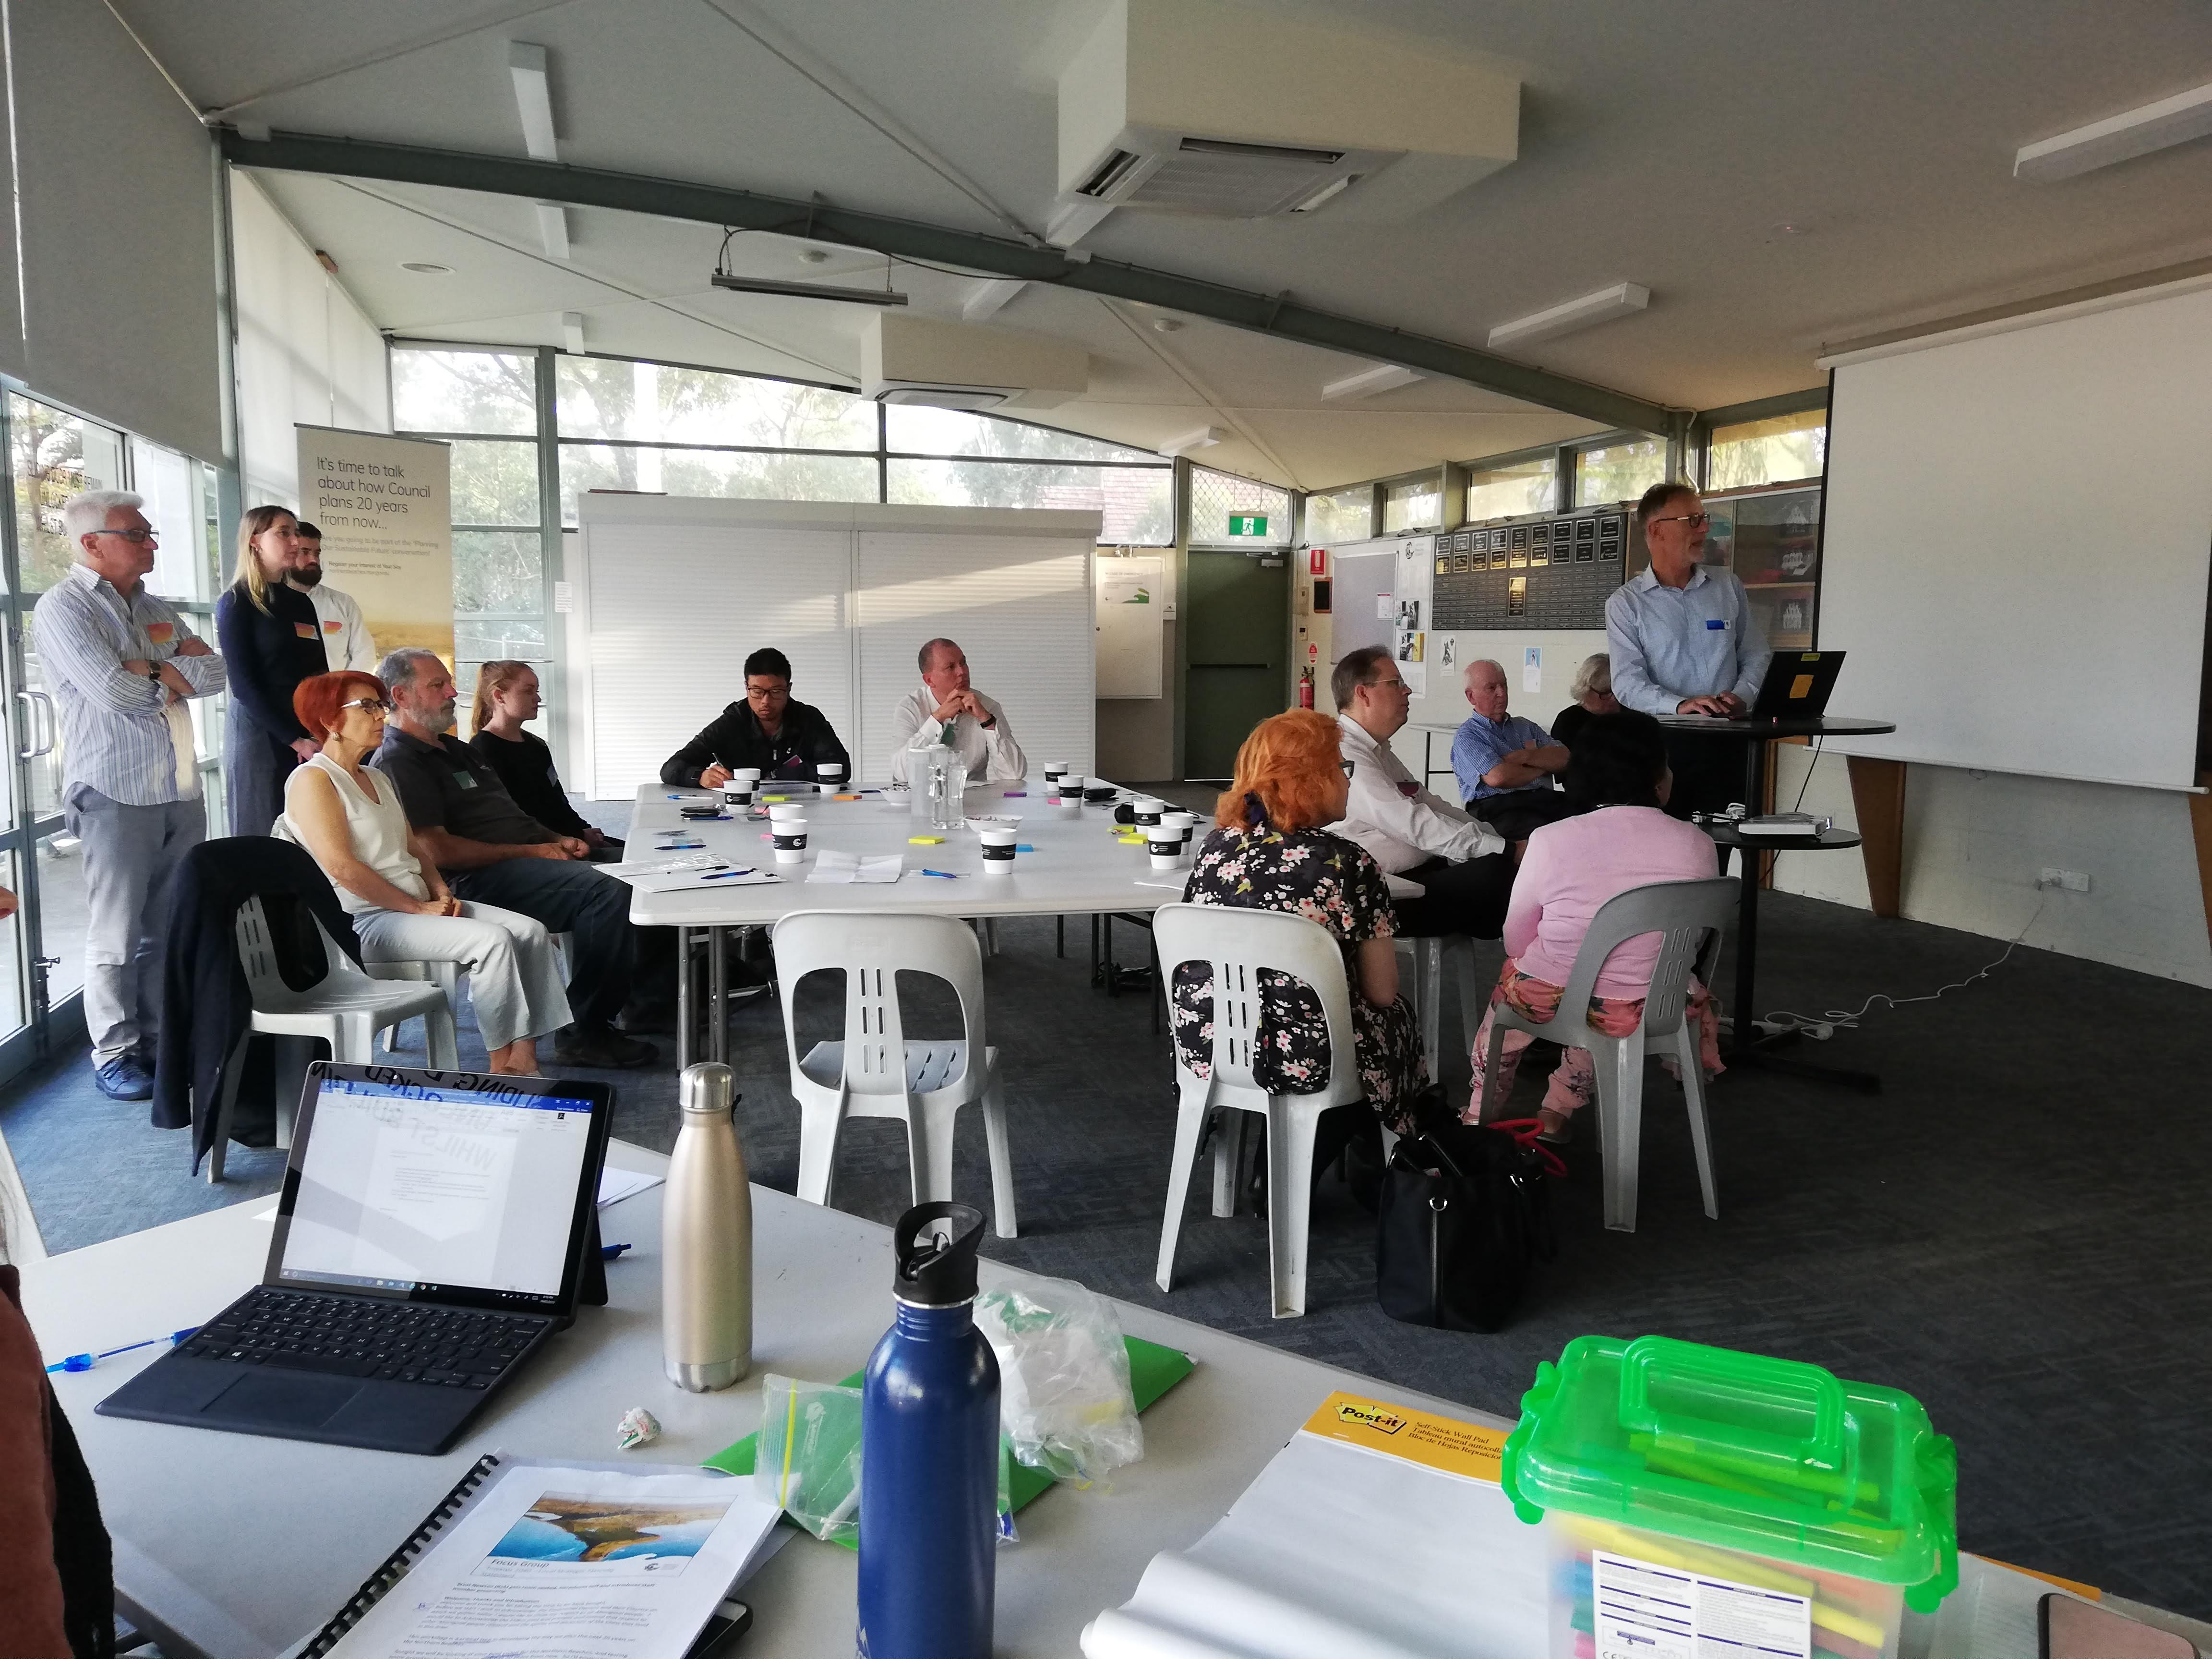 Frenchs forest fgd 20190319